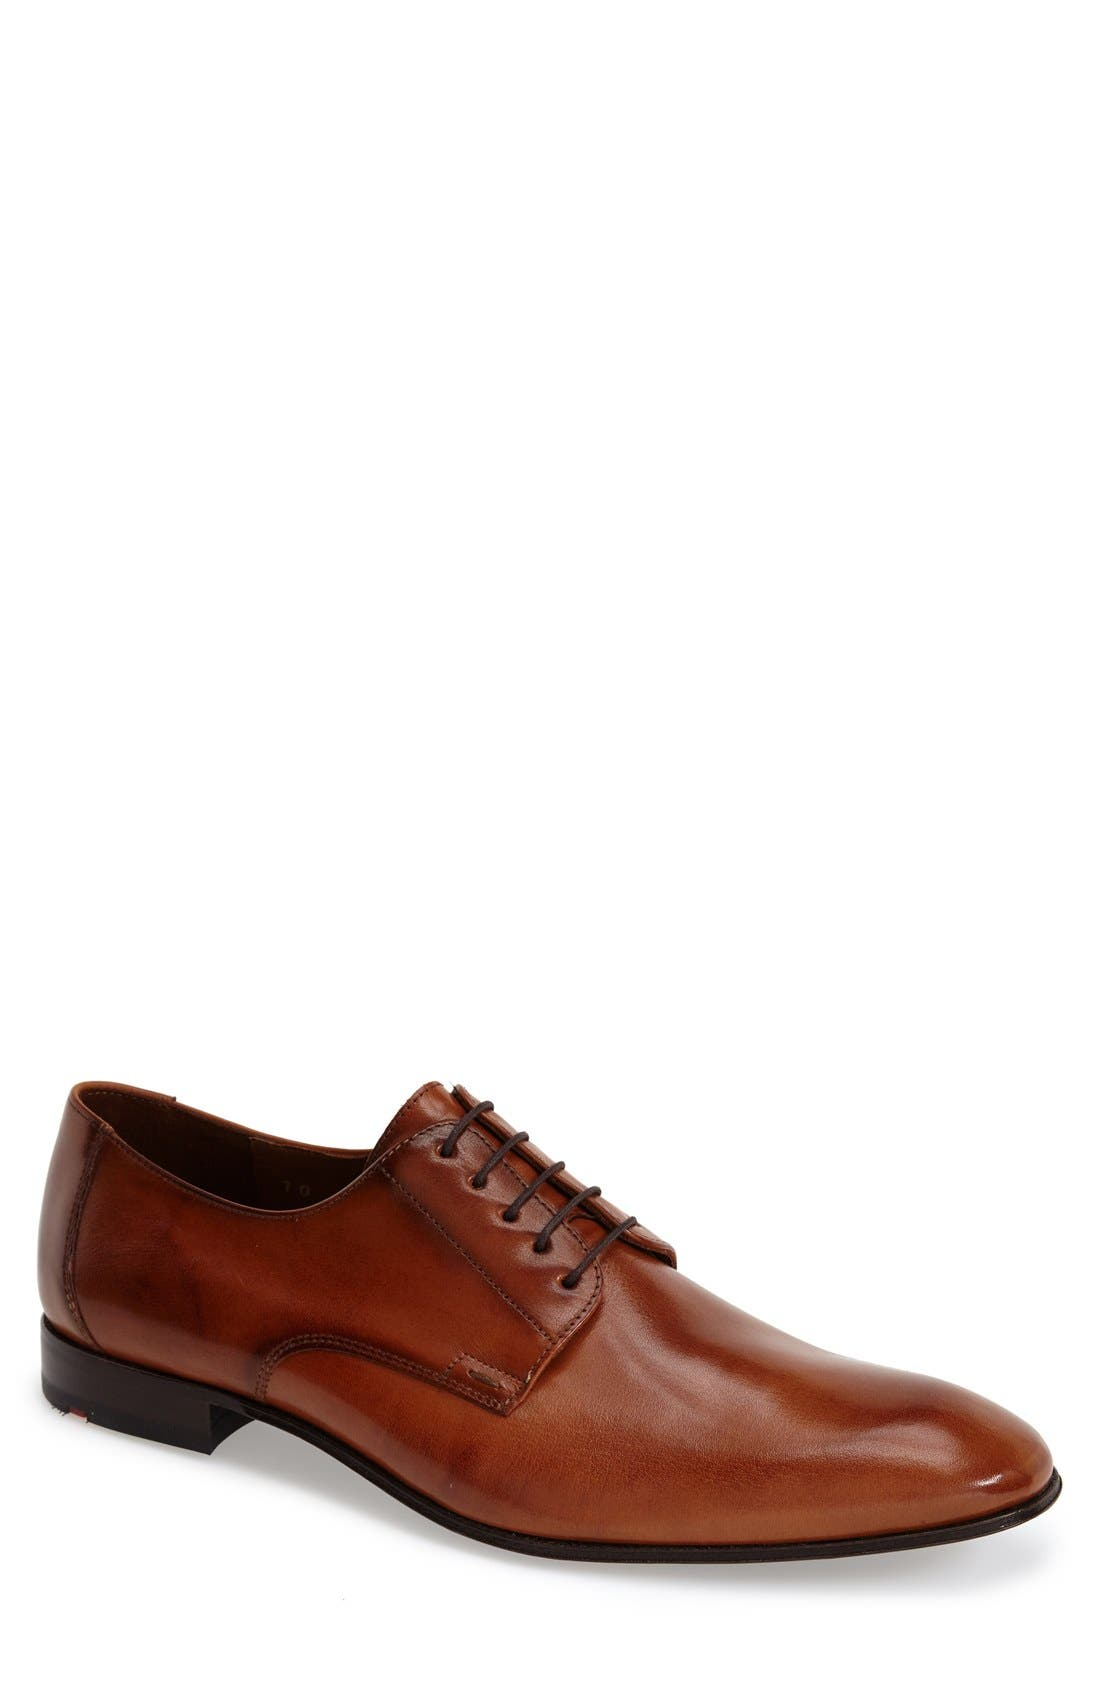 Lloyd Men's 'Laurin' Plain Toe Derby